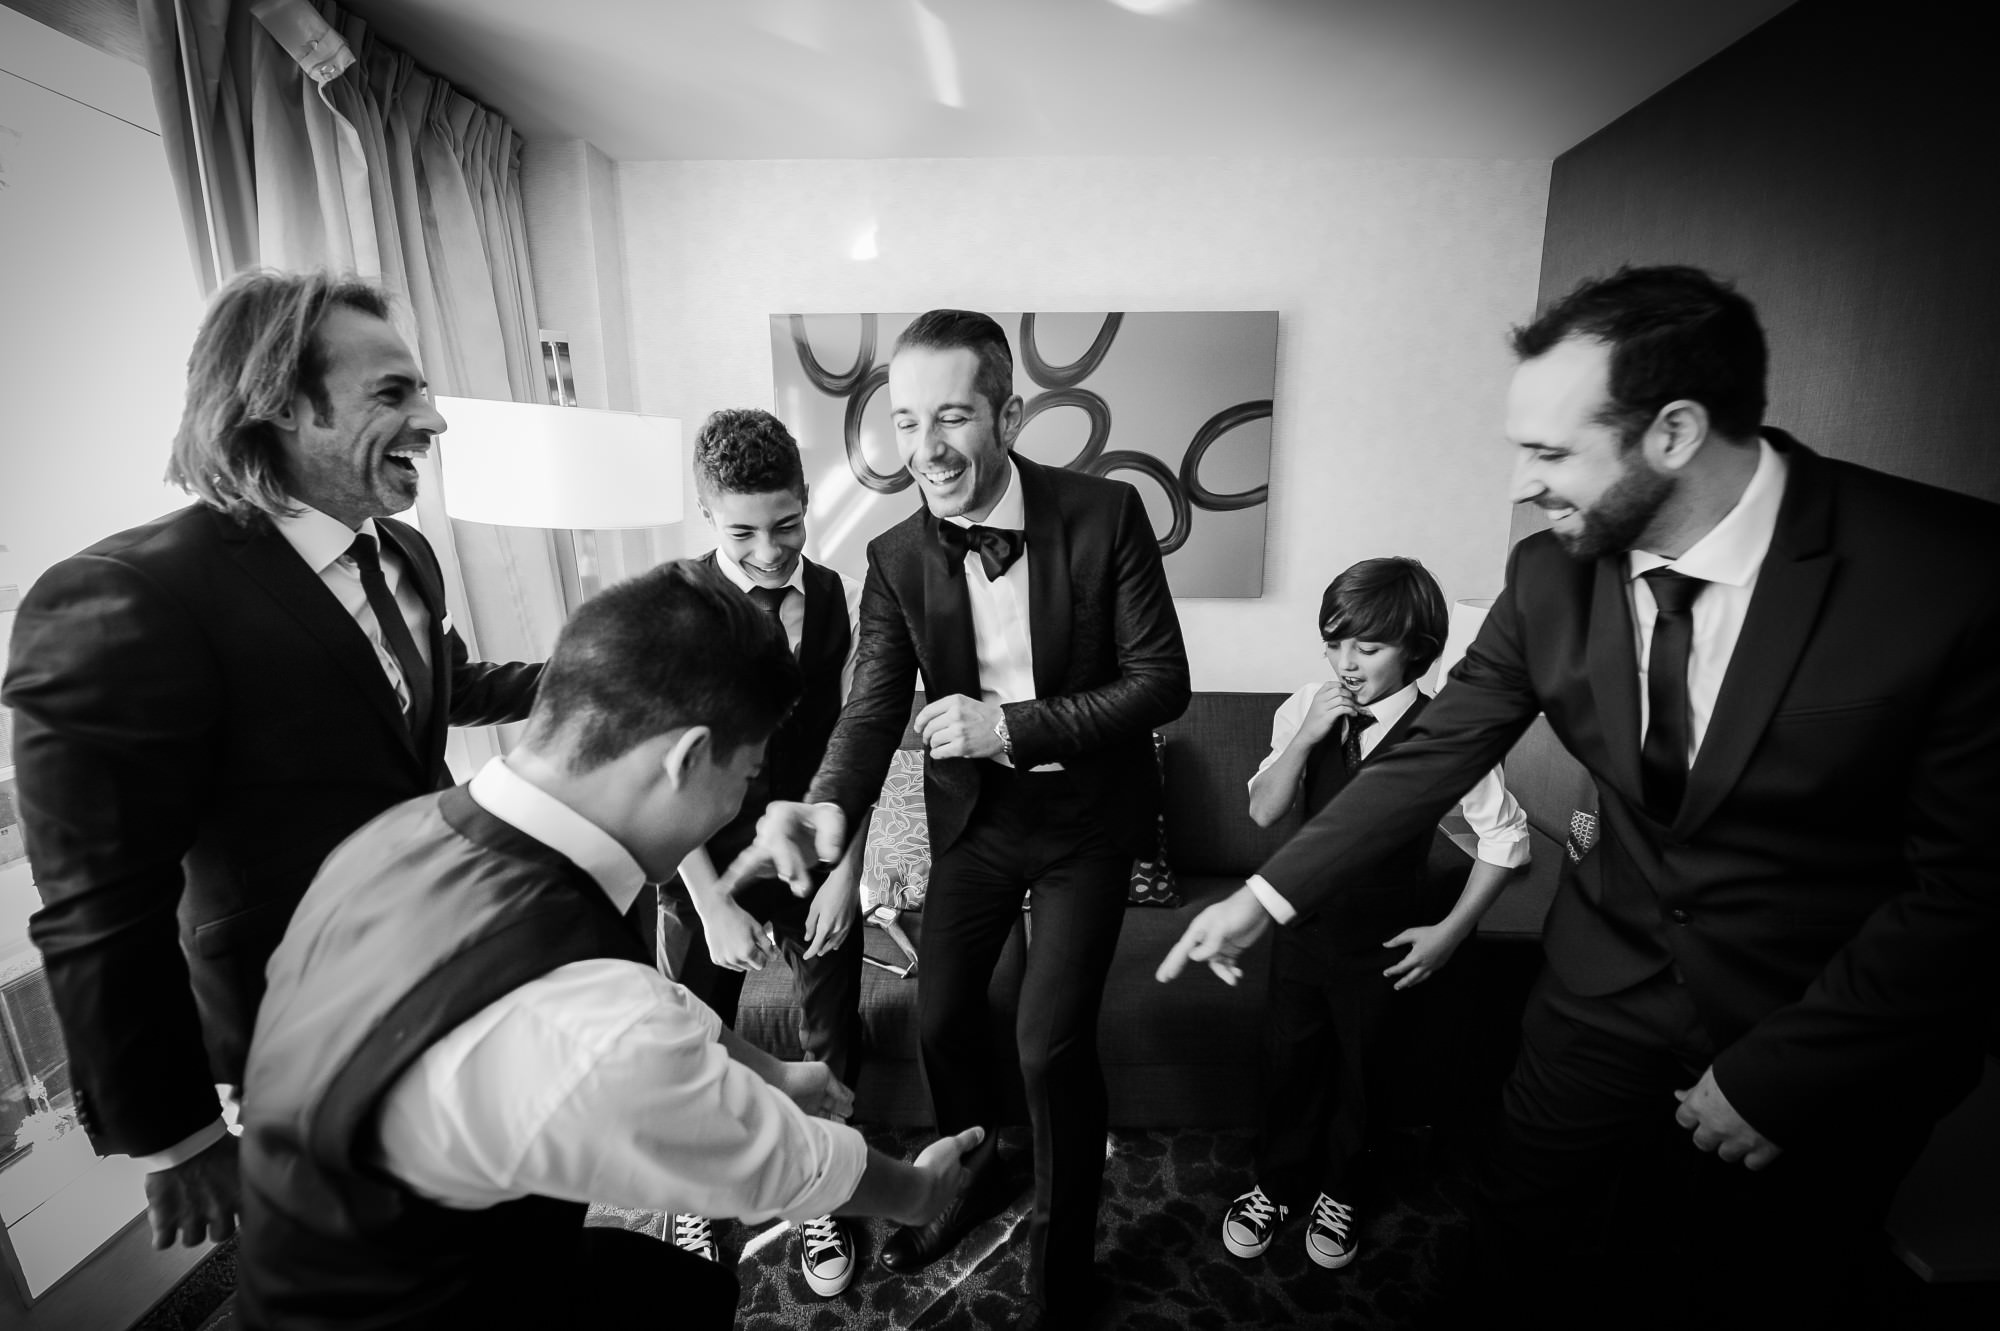 whimsical wedding lavimage wedding photography new york city montreal tania and charles gorgeous wedding inspiration bride groom pink green floral arrangements le mont blanc